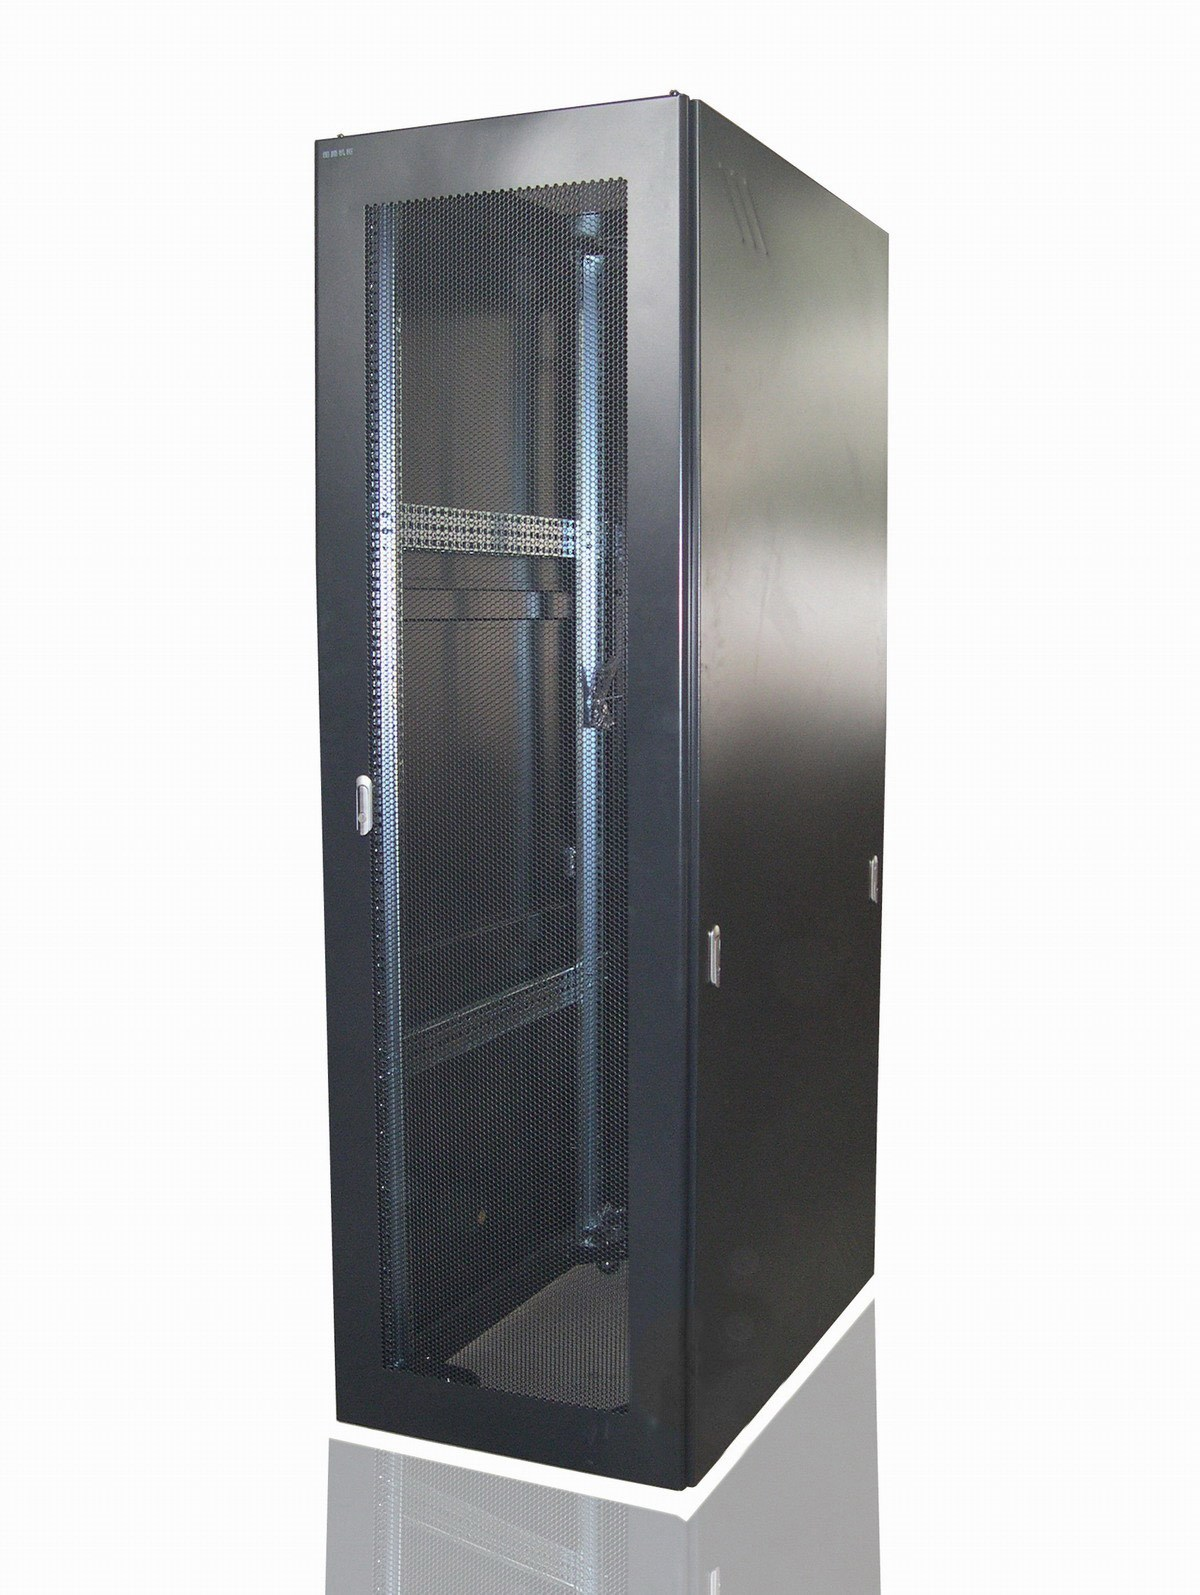 standard lenovo photo cabinet now netbay rack server product off